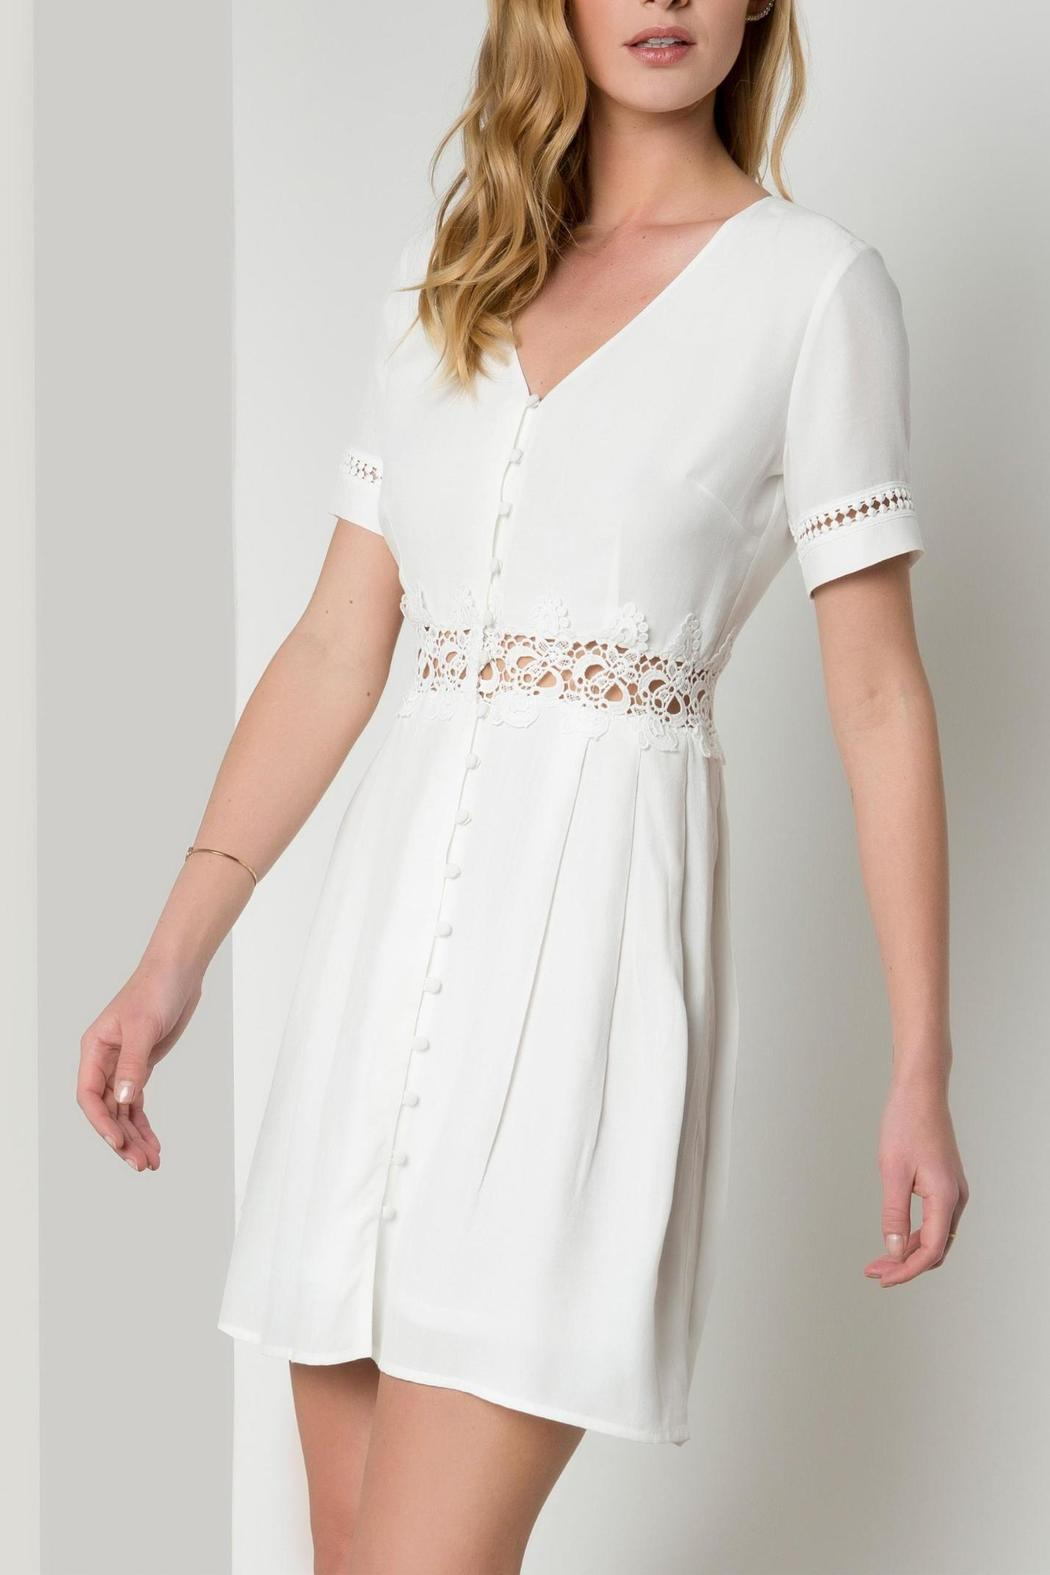 Urban Touch Lace Detailed Dress - Main Image